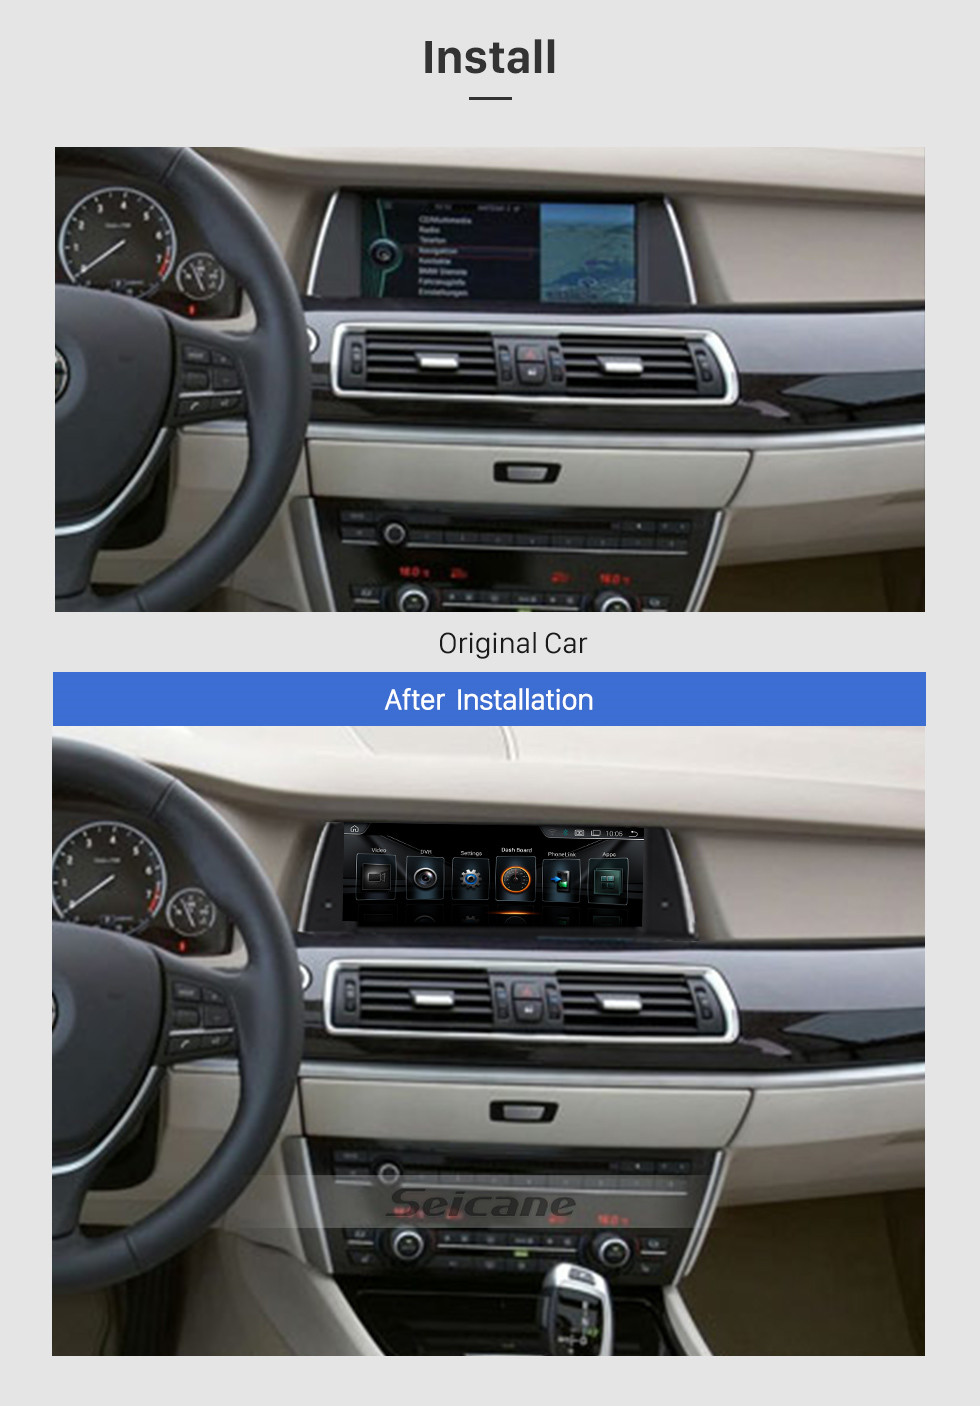 Seicane 10.25 Inch Android 8.1 HD Touchscreen 2013-2017 BMW 5 Series F07 GT NBT Car Stereo Radio Head Unit GPS Navigation System Bluetooth Phone WIFI Support DVR USB Steering Wheel Control Backup Camera